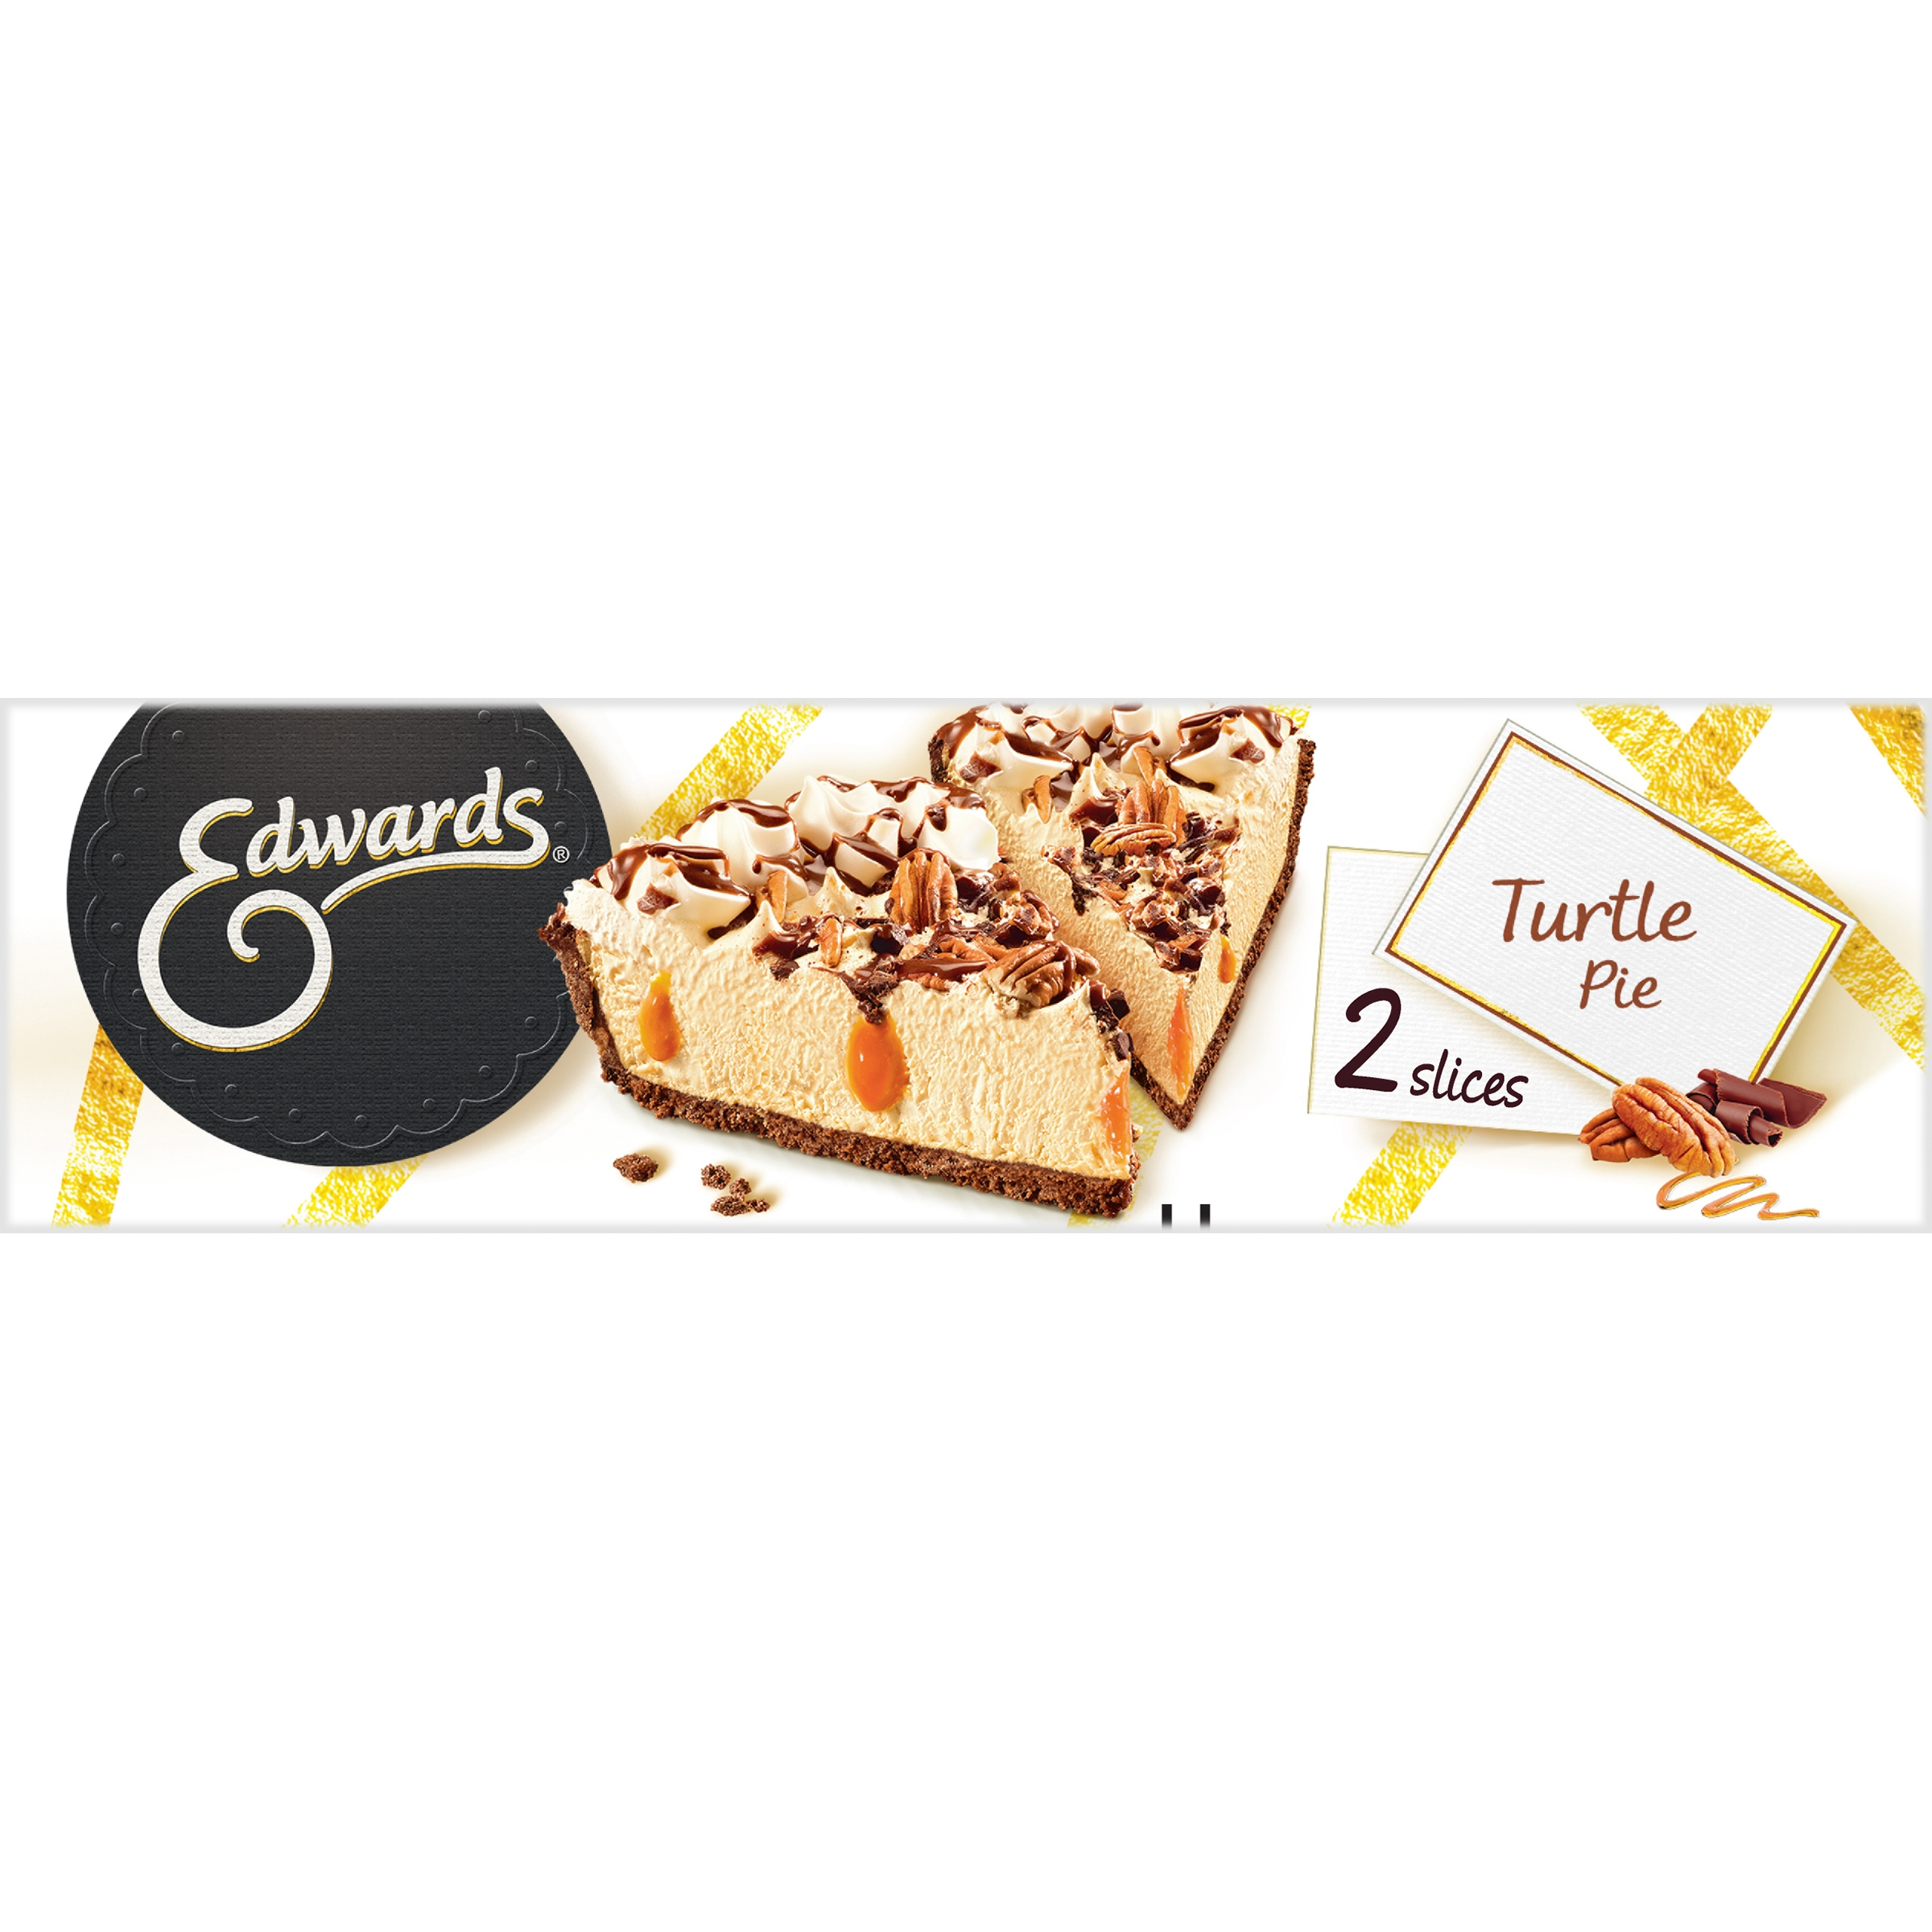 Edwards Turtle Pie 5.4 oz. Box - Walmart.com